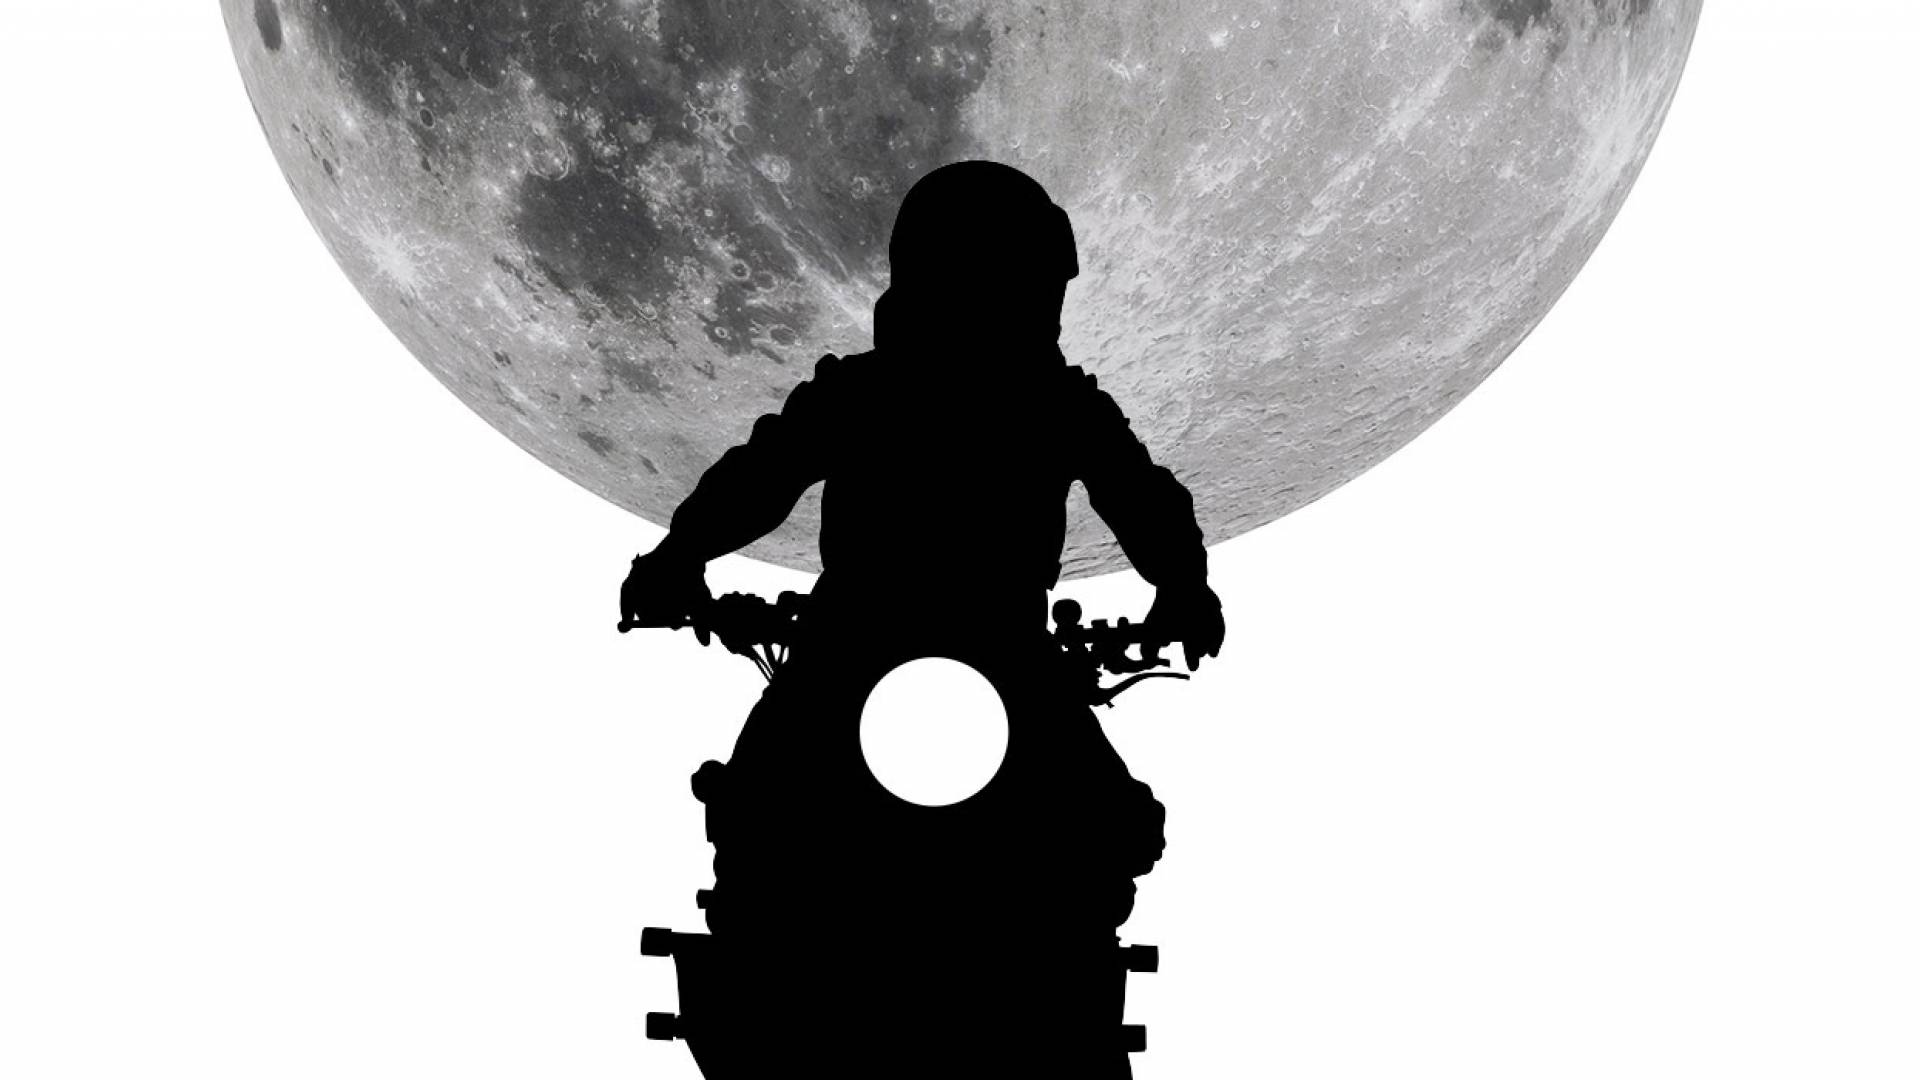 Motorbike and moon